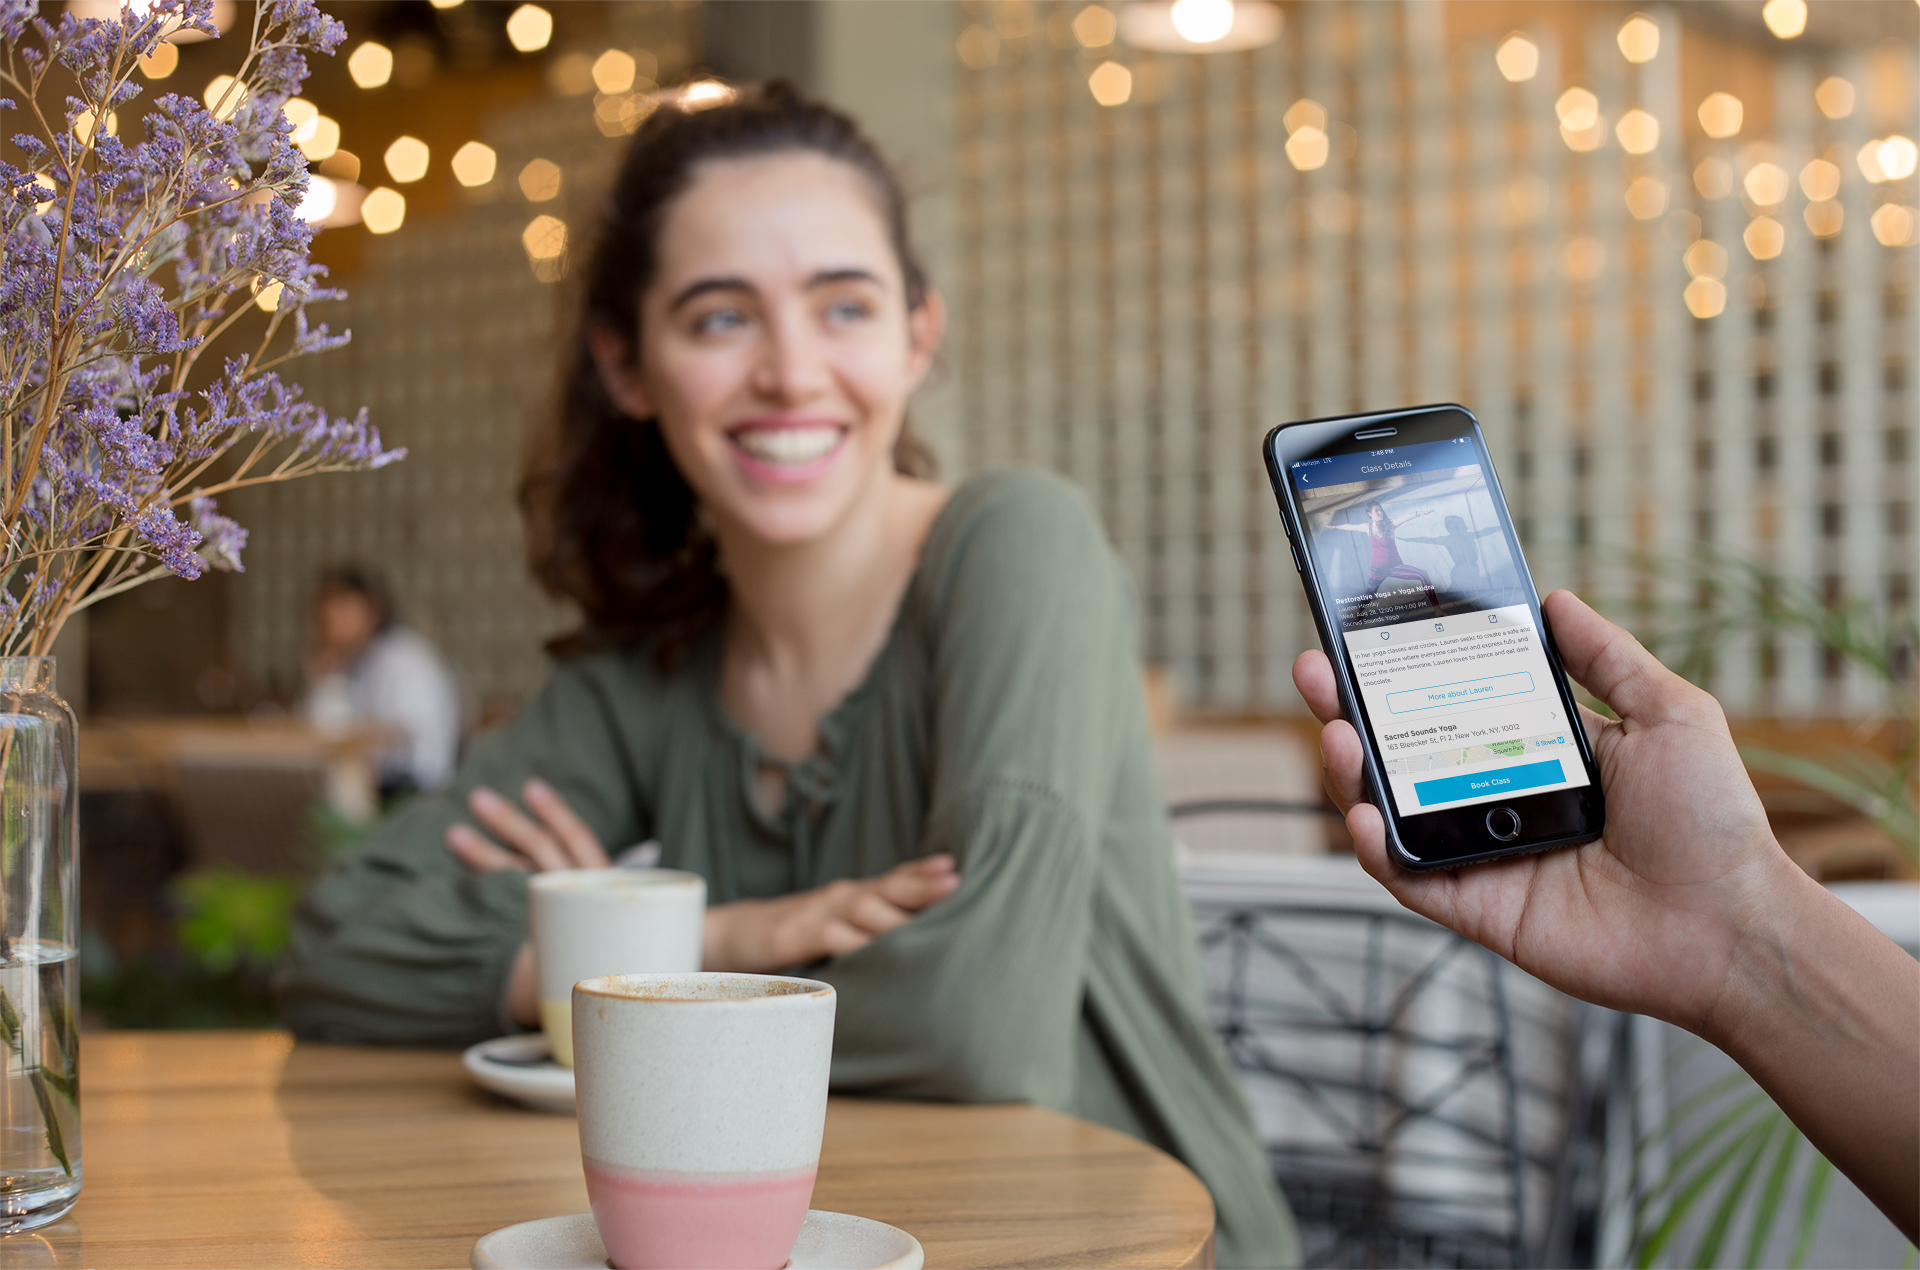 space-gray-iphone-8-plus-mockup-featuring-a-man-with-a-girl-at-a-coffee-shop-a21265.png